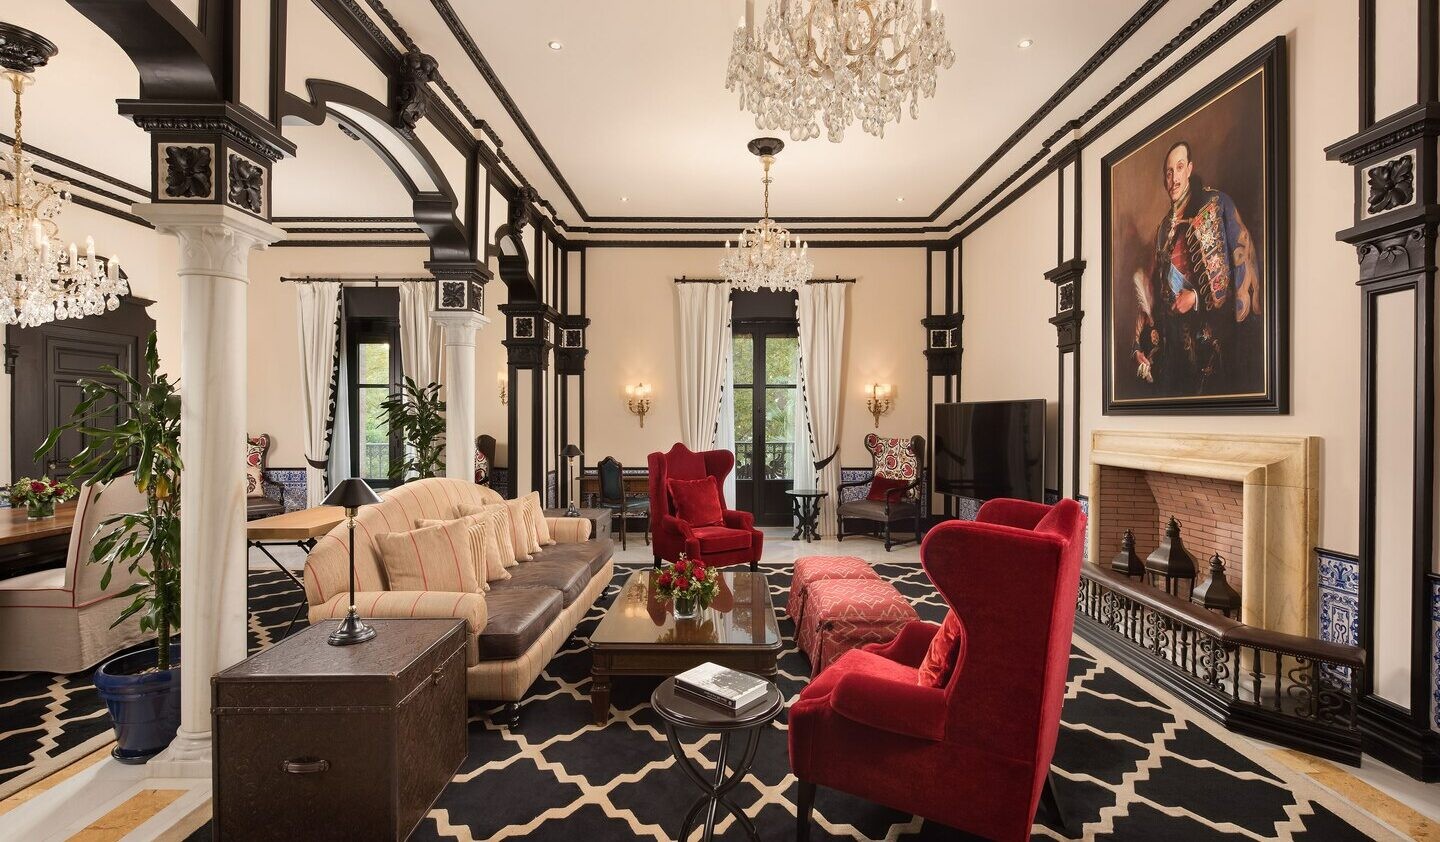 Hotel_Alfonso_XIII-suite-living-room